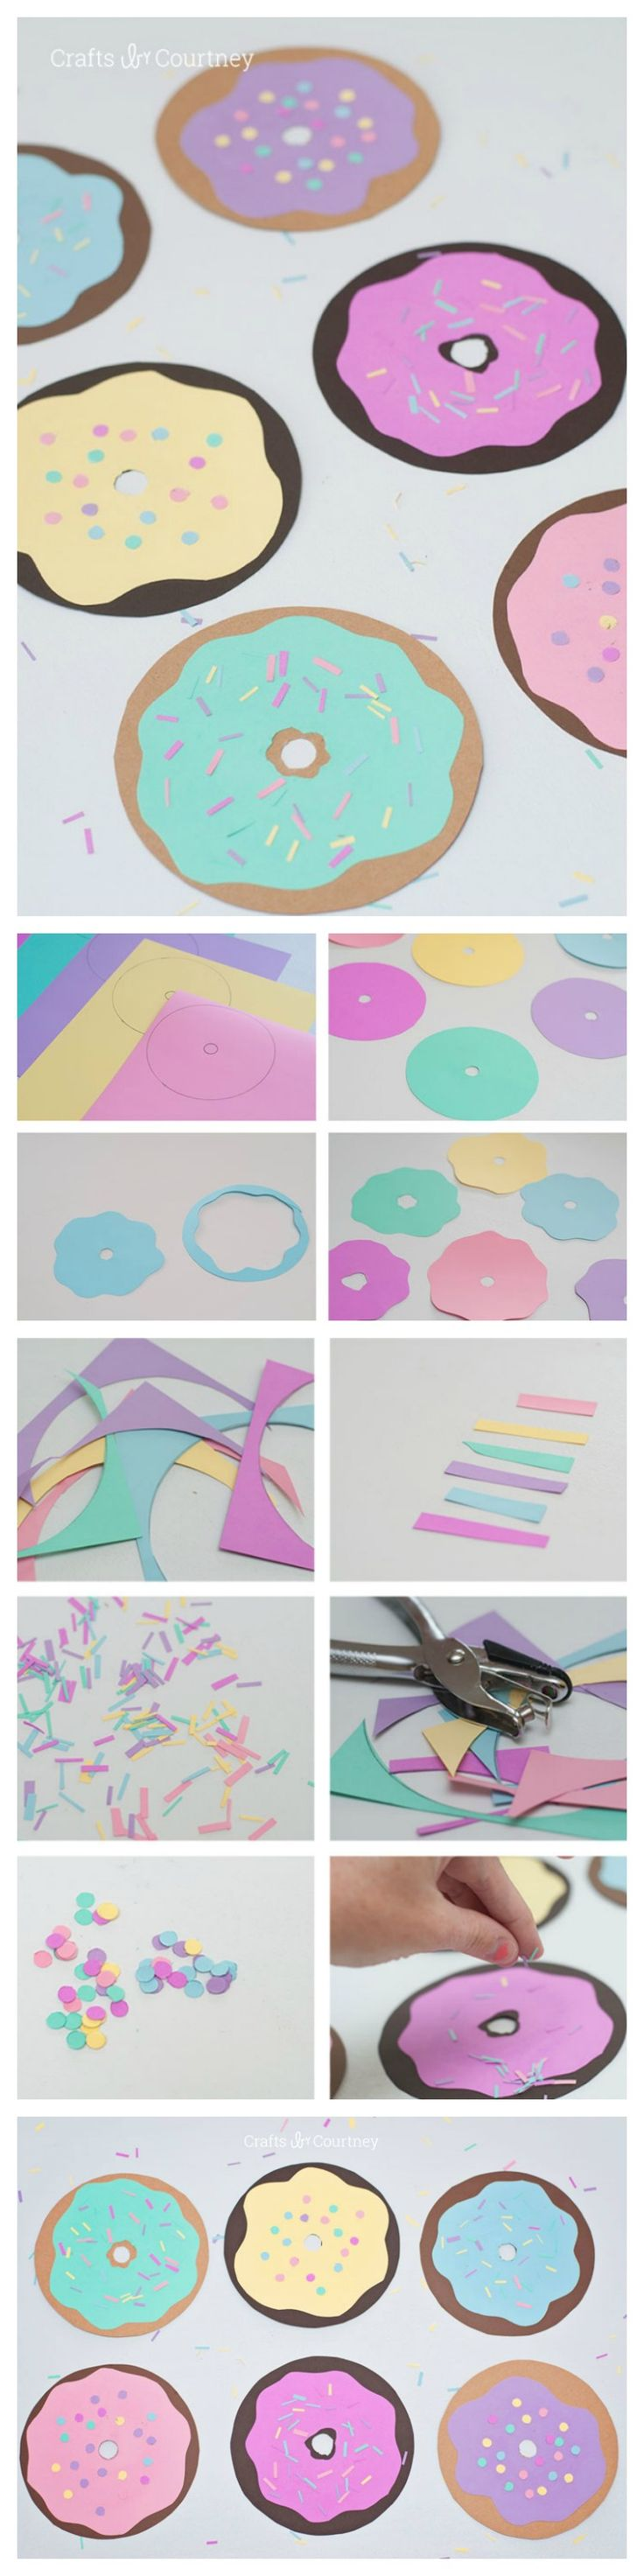 June 3rd is National Donut day so I thought, why not make a fun Donut Craft with the kids!! It's a super easy, yet a fun craft for the kids to work on this Summer.